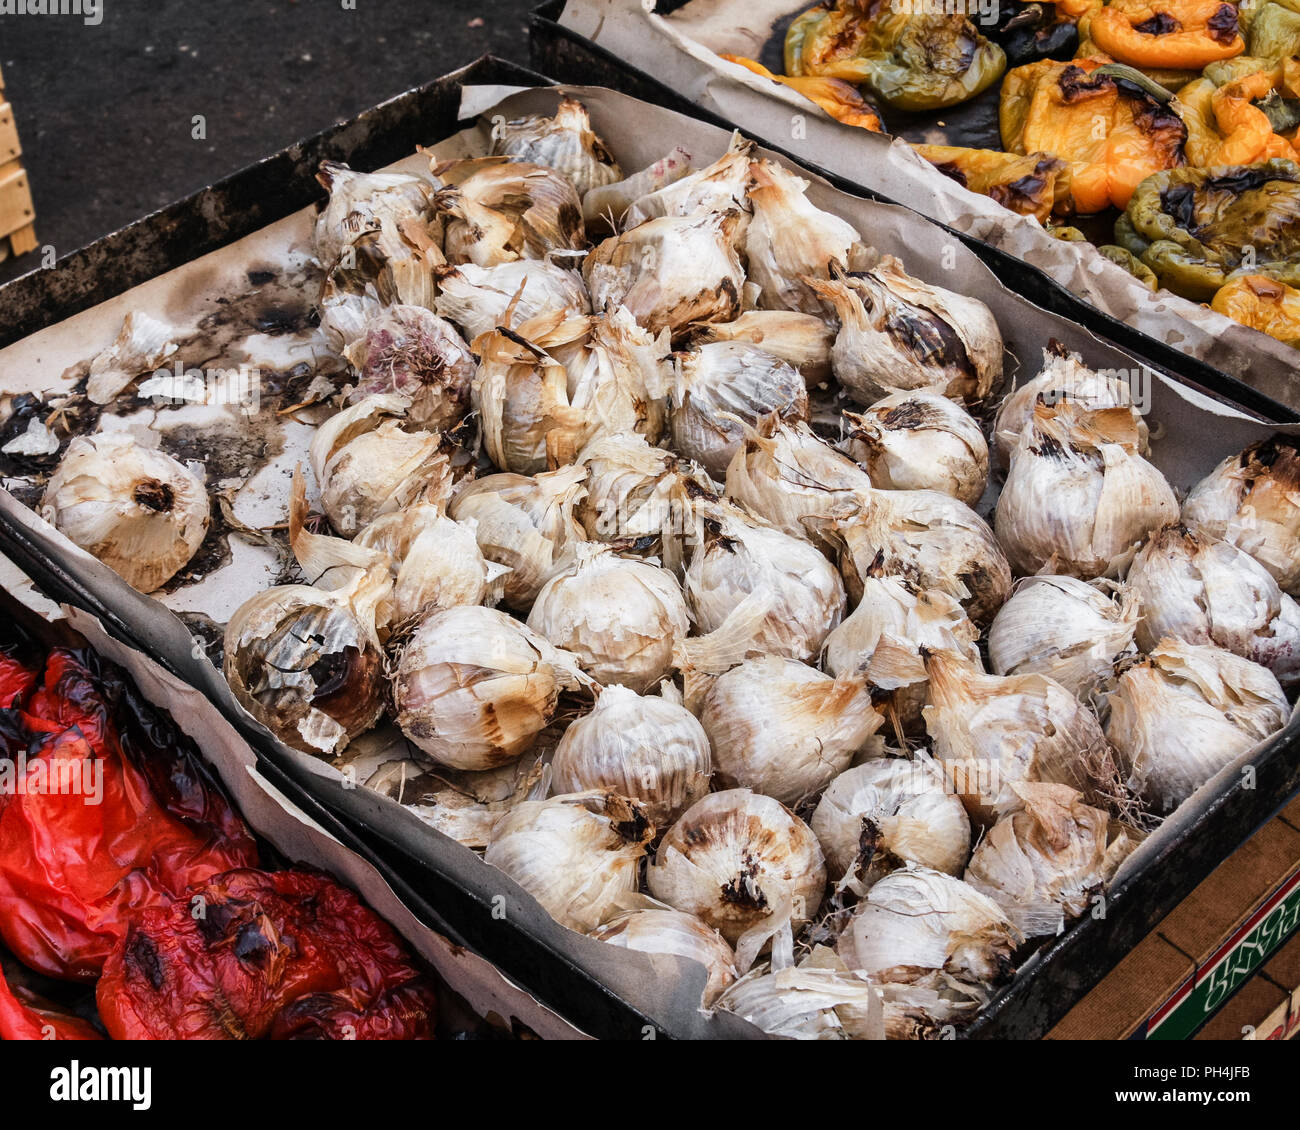 Roasted onions at market stall, palermo, Sicily - Stock Image